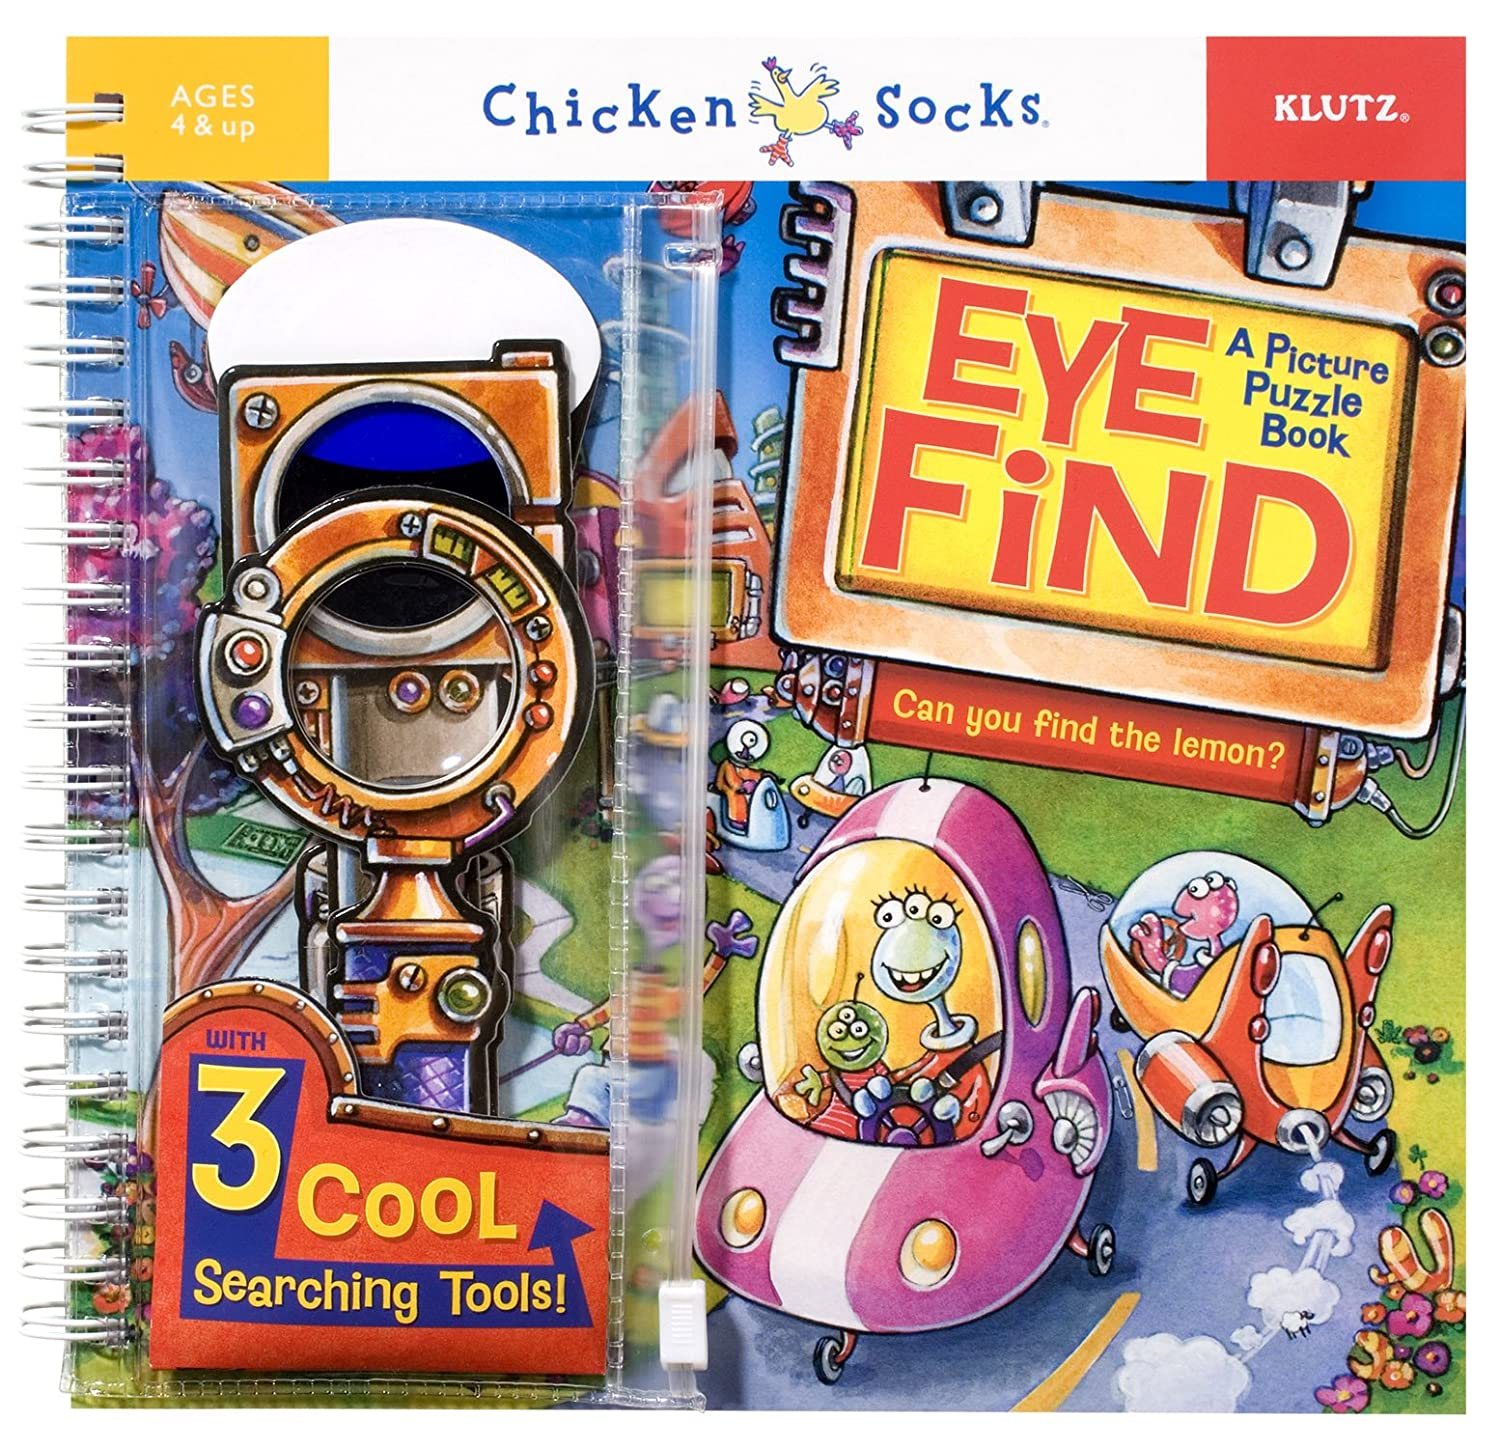 amazon com eye find a picture puzzle book chicken socks